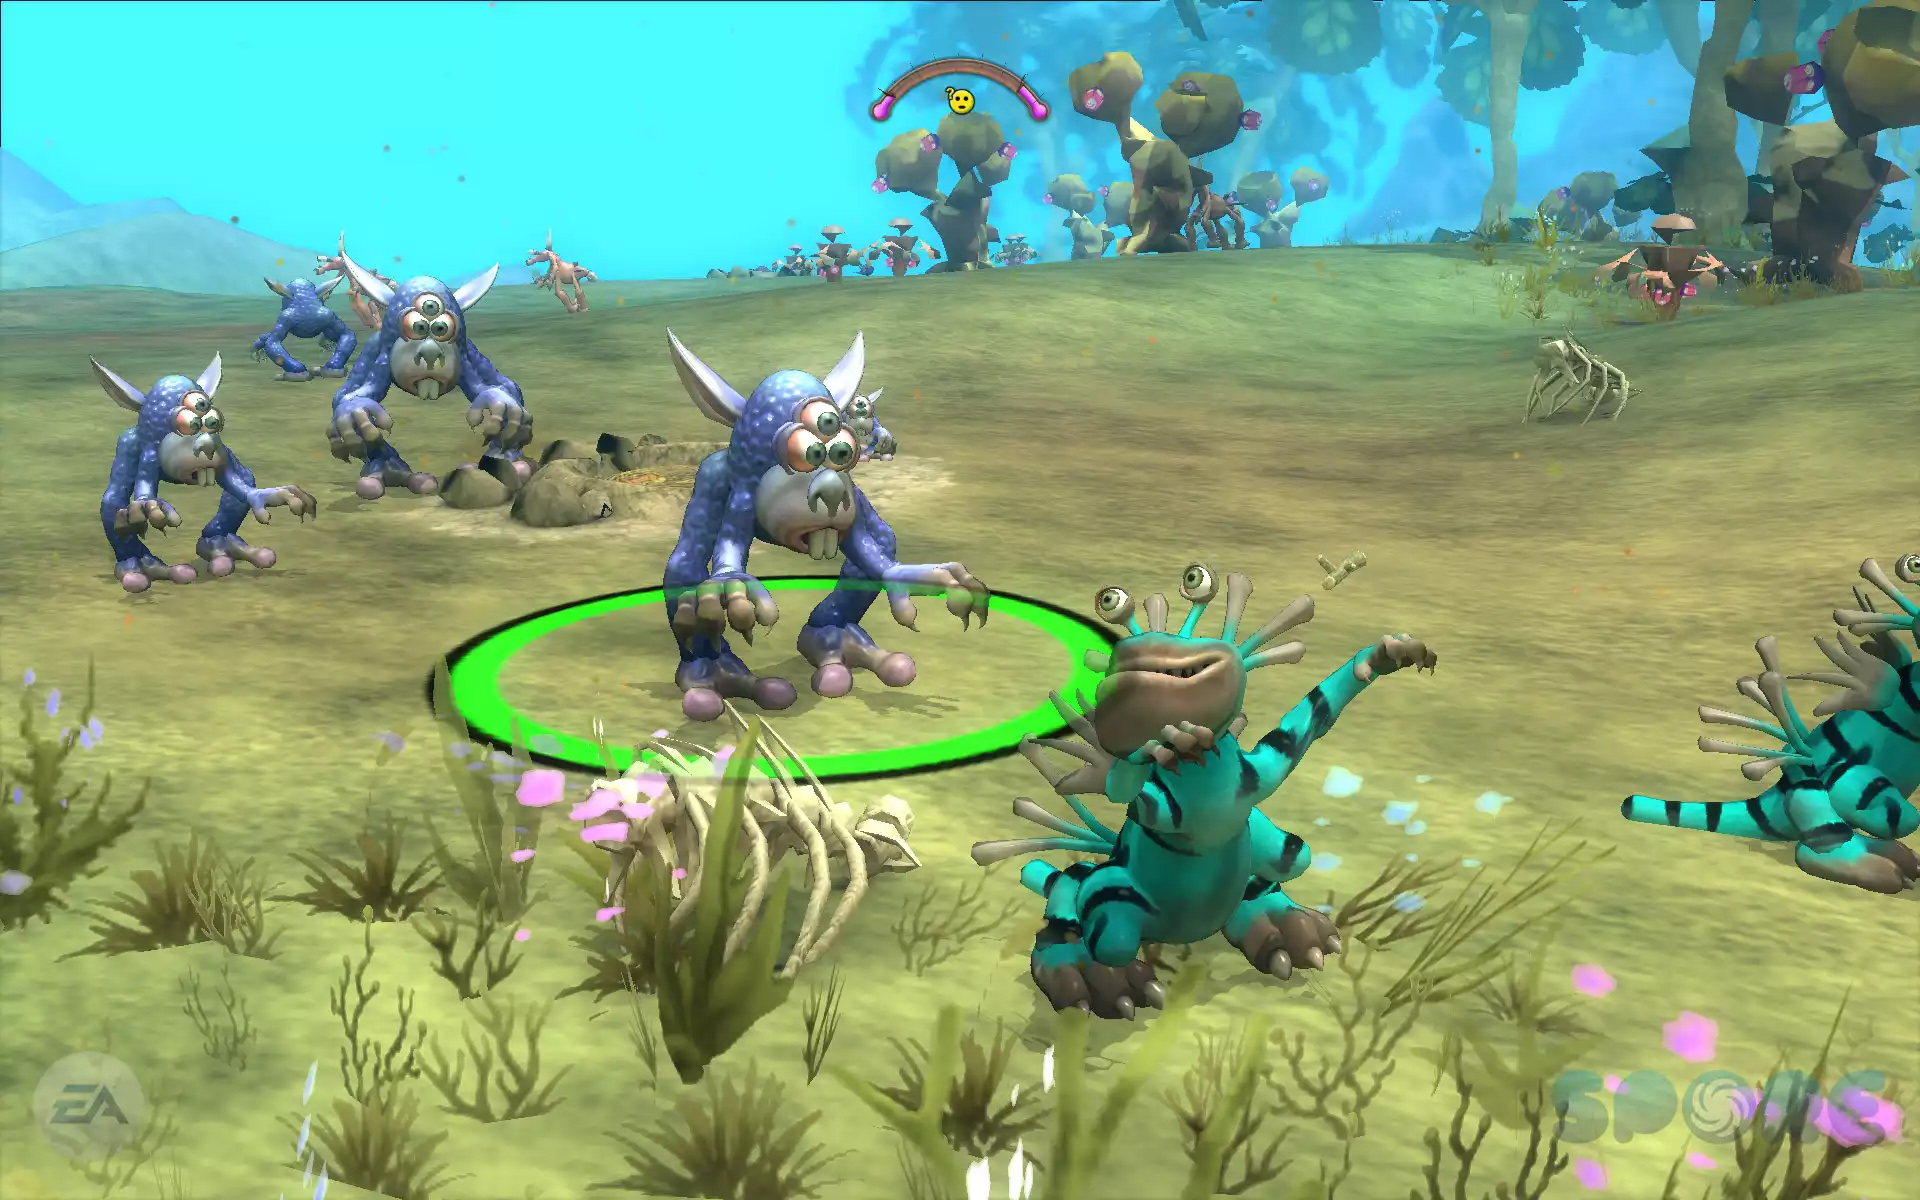 Spore Review: Was Spore Worth the Wait?